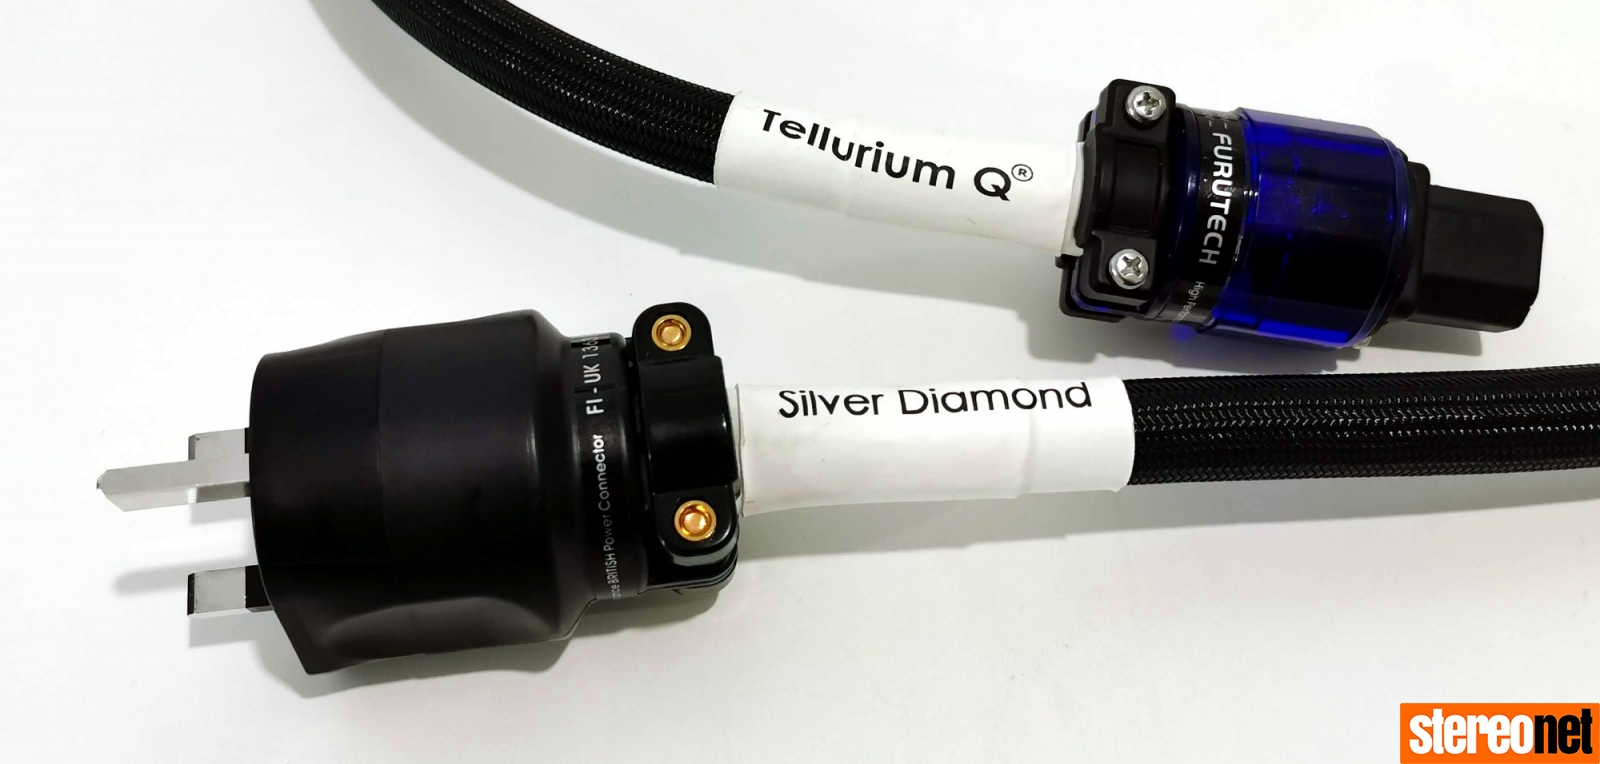 Tellurium Q Silver Diamond Power Cable Review